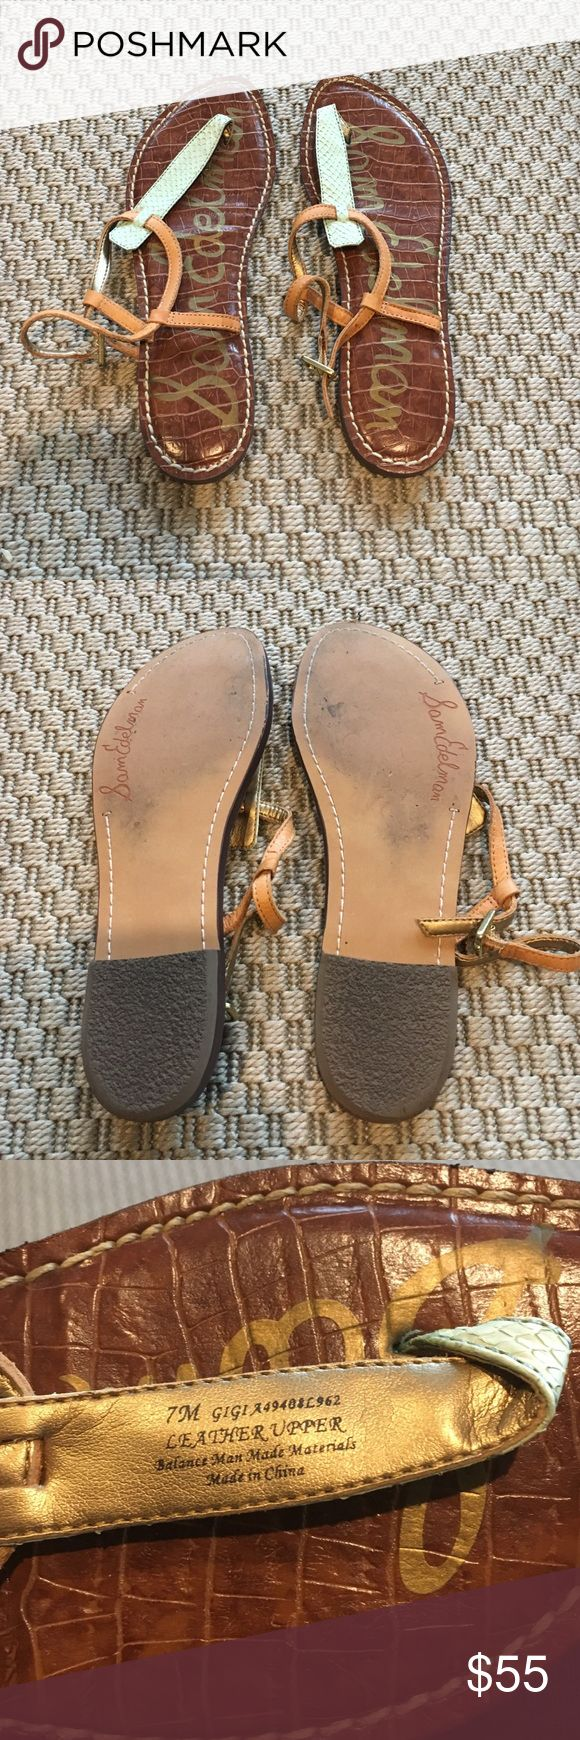 SAM EDELMAN Gigi leather sandals Cute mint green and tan Sam Edelman Gigi sandals. Size 7, true to size and worn only once! Sam Edelman Shoes Sandals